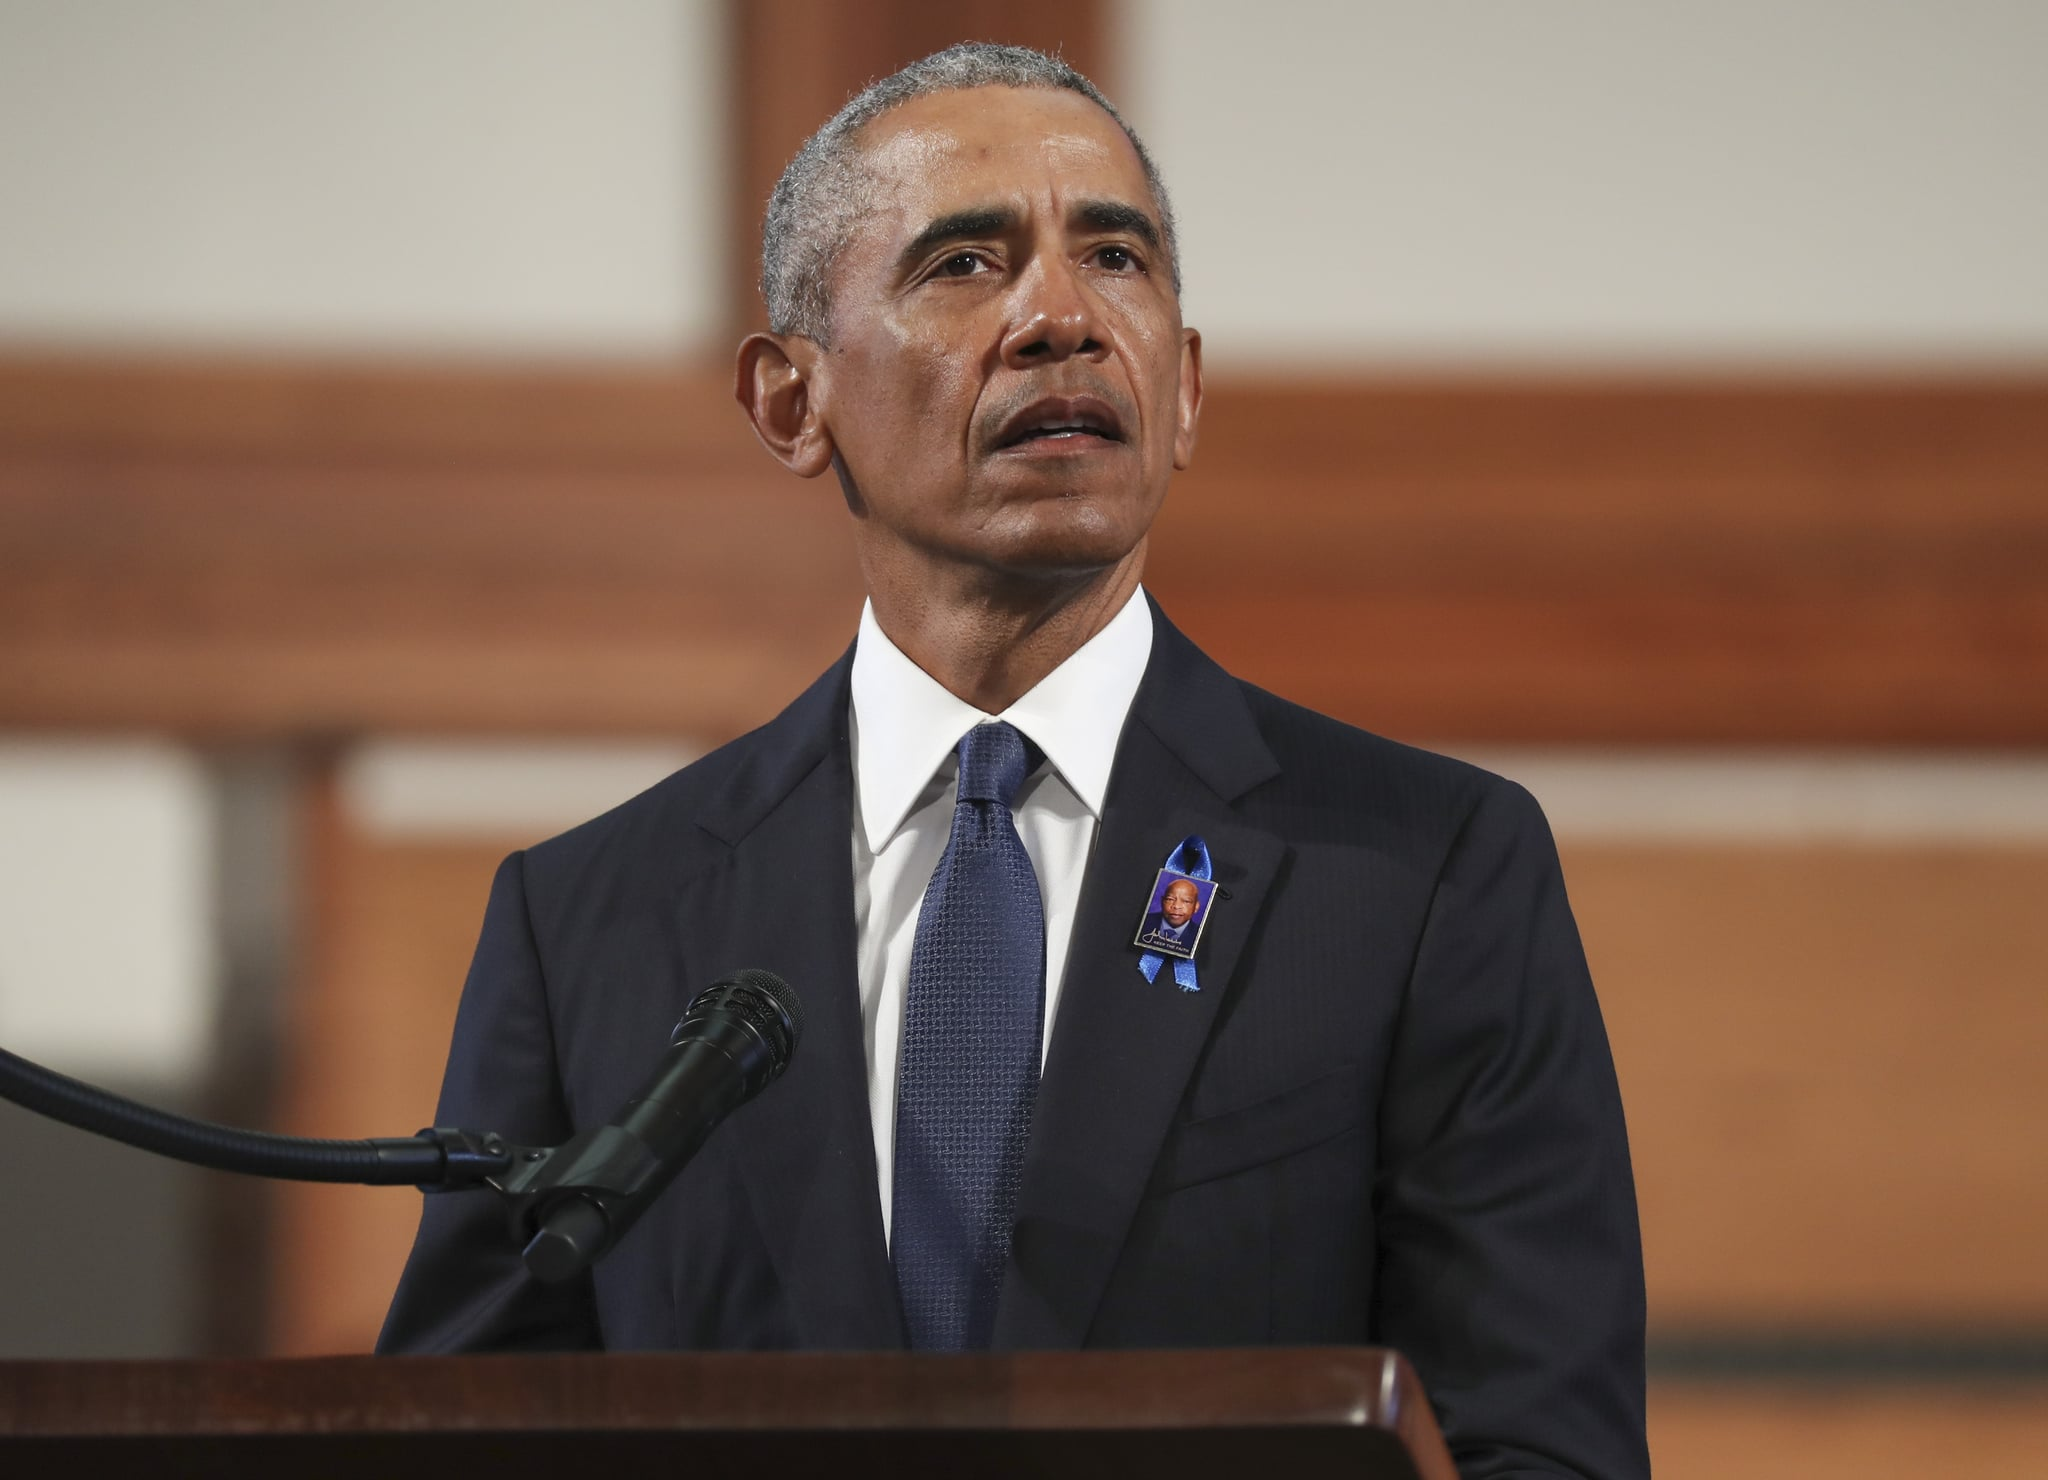 ATLANTA, GA - JULY 30:  Former U.S. President Barack Obama speaks during the funeral service of the late Rep. John Lewis (D-GA) at Ebenezer Baptist Church on July 30, 2020 in Atlanta, Georgia.  Former U.S. President Barack Obama gave the eulogy for the late Democratic congressman and former presidents George W. Bush and Bill Clinton were also in attendance. Rep. Lewis was a civil rights pioneer, contemporary of Dr. Martin Luther King, Jr. and helped to organise and address the historic March on Washington in August 1963. (Photo by Alyssa Pointer-Pool/Getty Images)